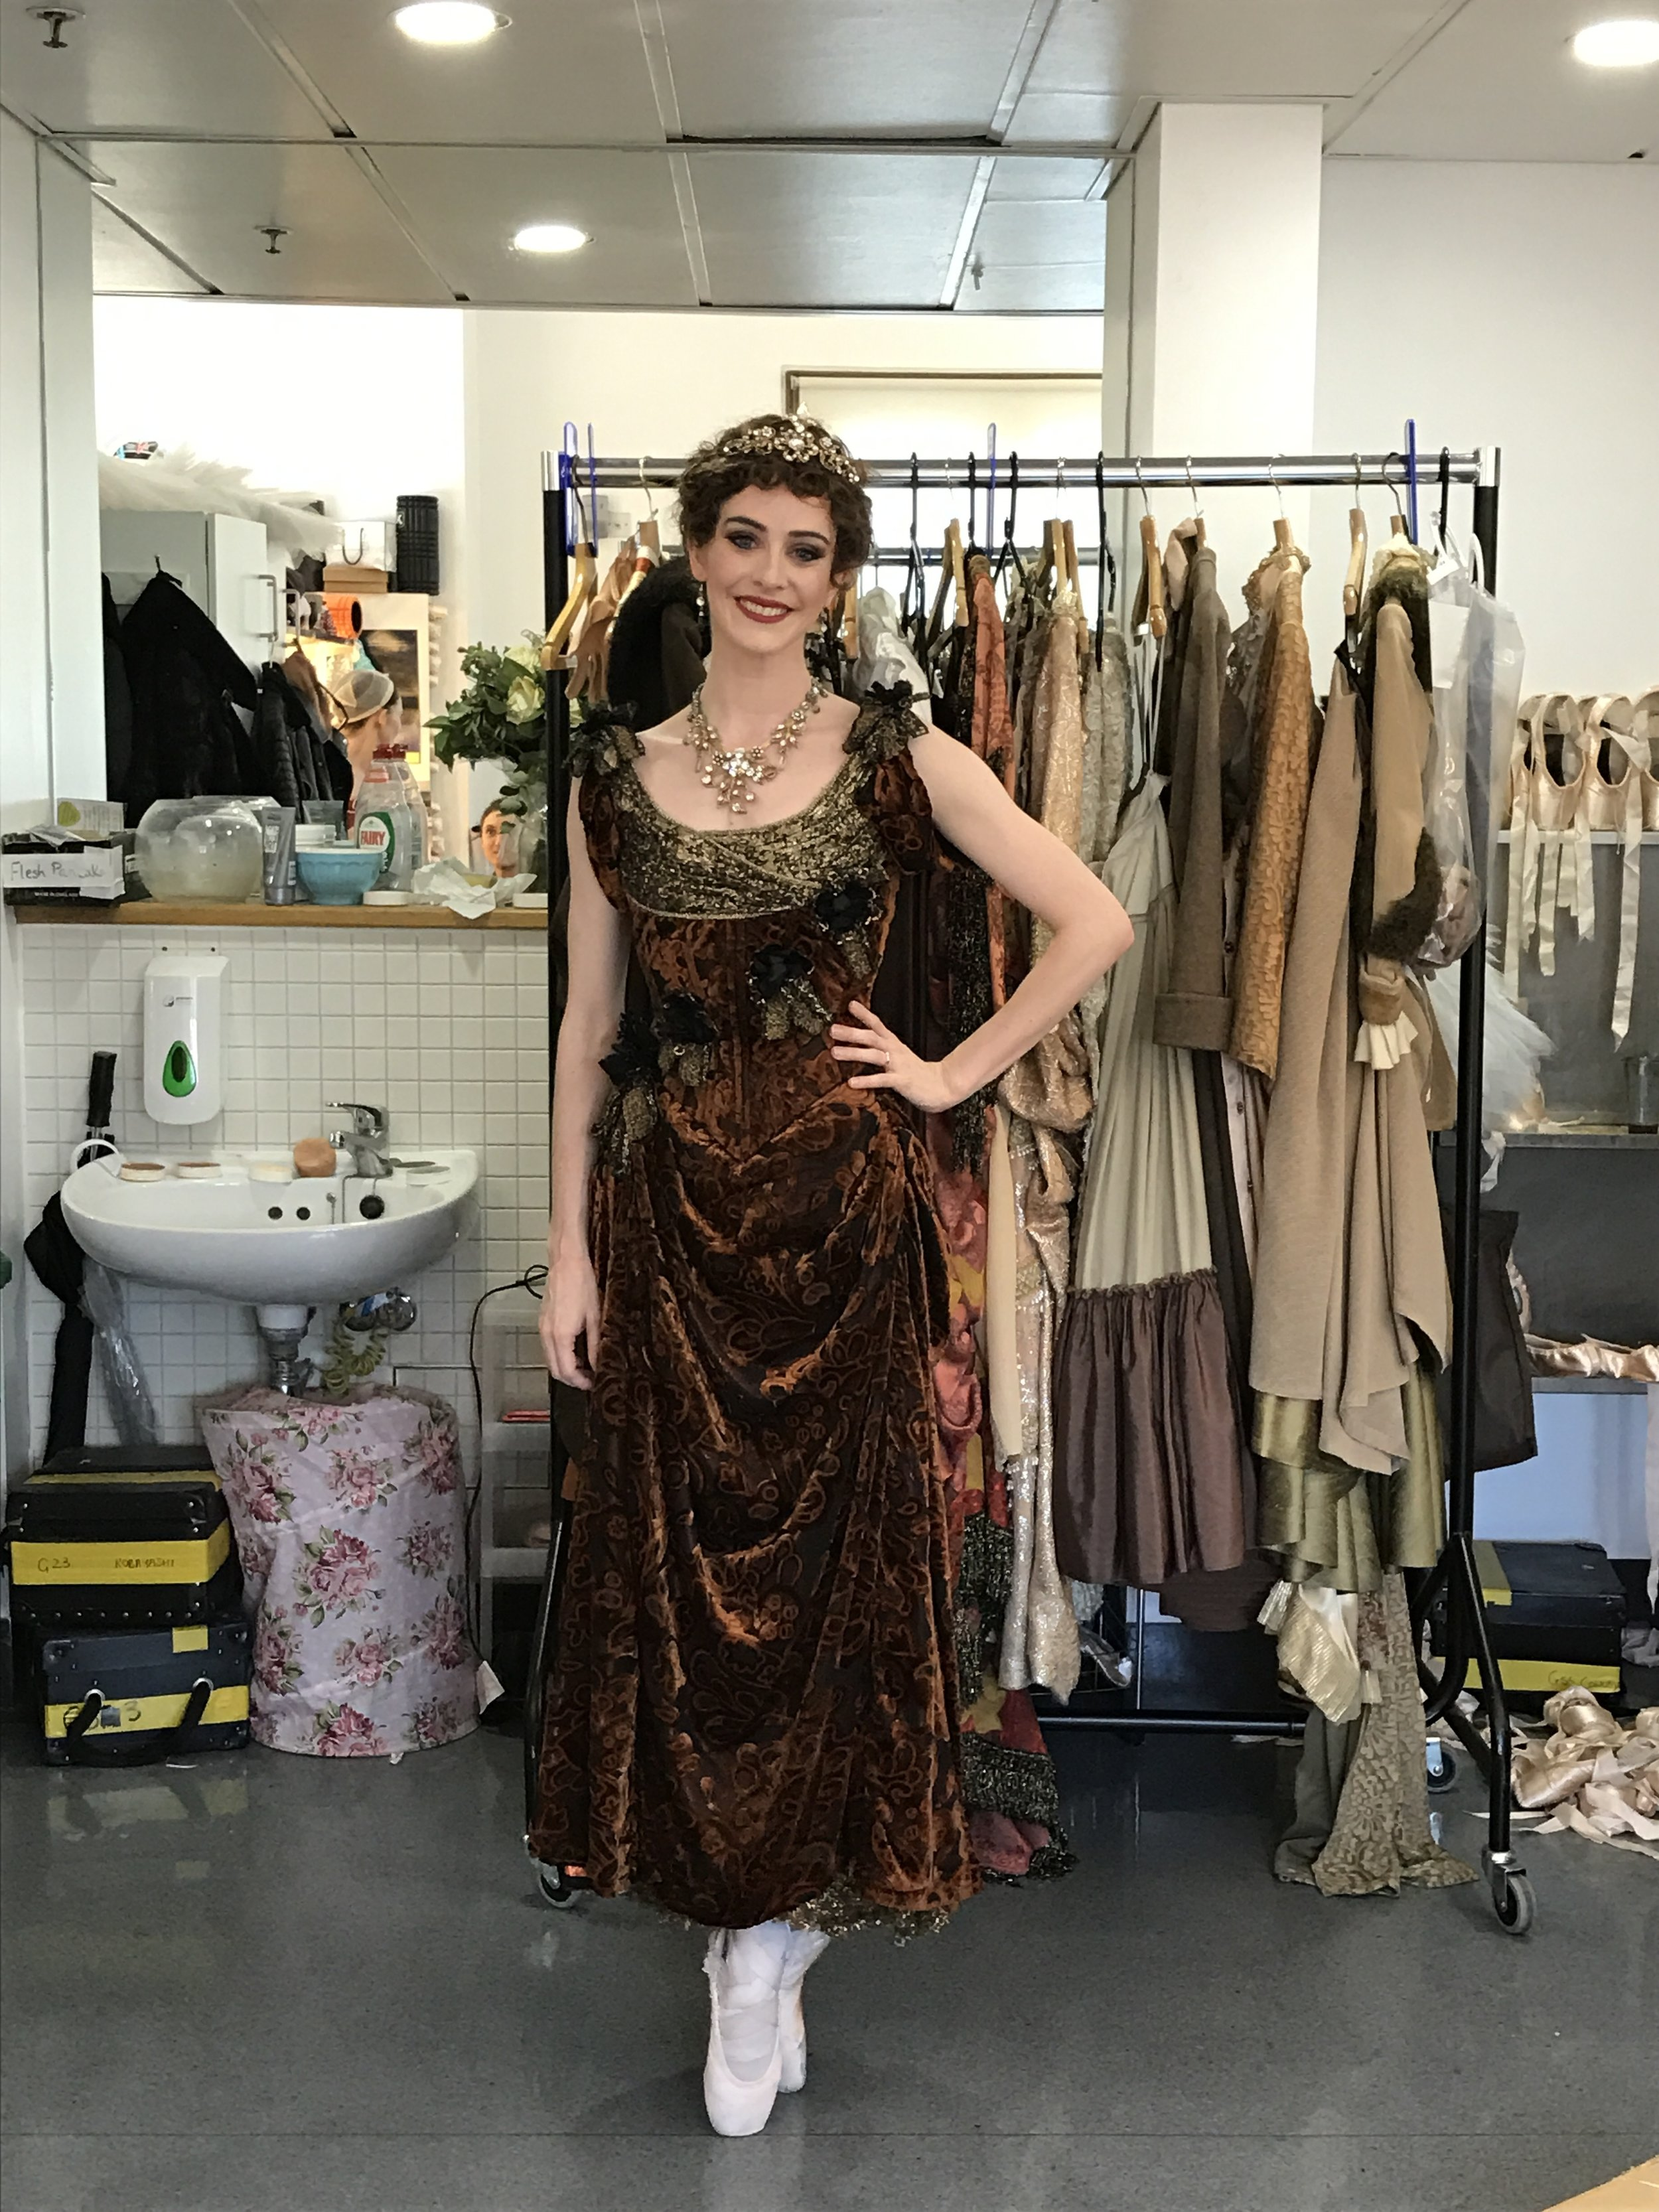 ACT THREE. BEDROOM SCENE. PERFECT DRESS TO FINISH WITH. LUCIOUS HEAVY VELVETS BUT LIGHT AS A FEATHER.